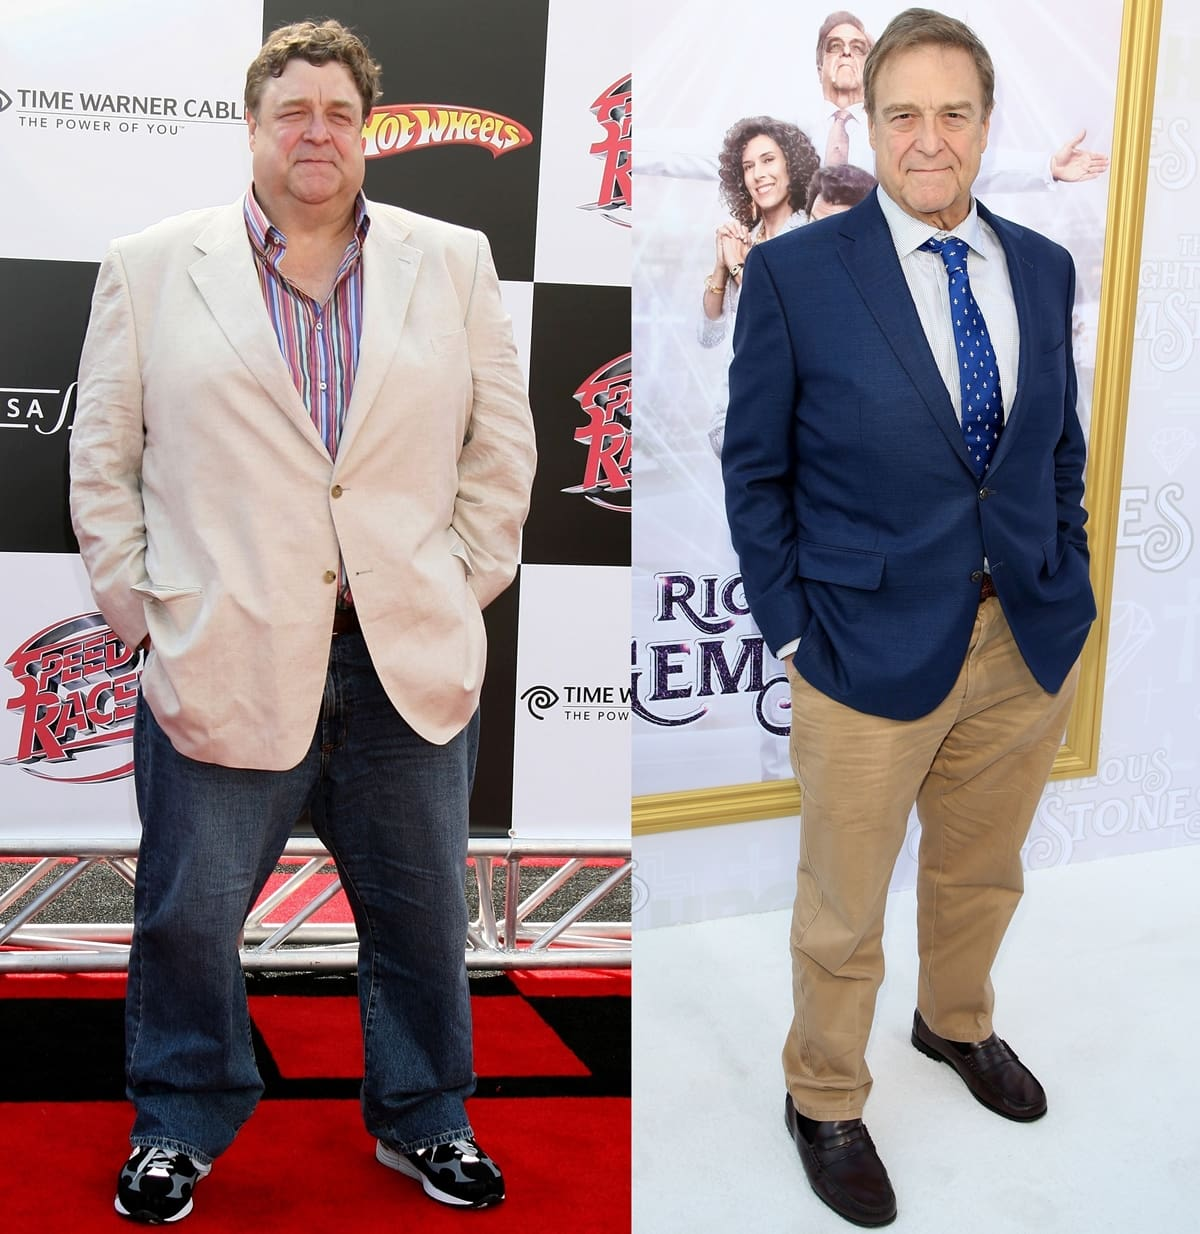 John Goodman has lost more than 100 pounds by implementing a healthier diet and exercise regime